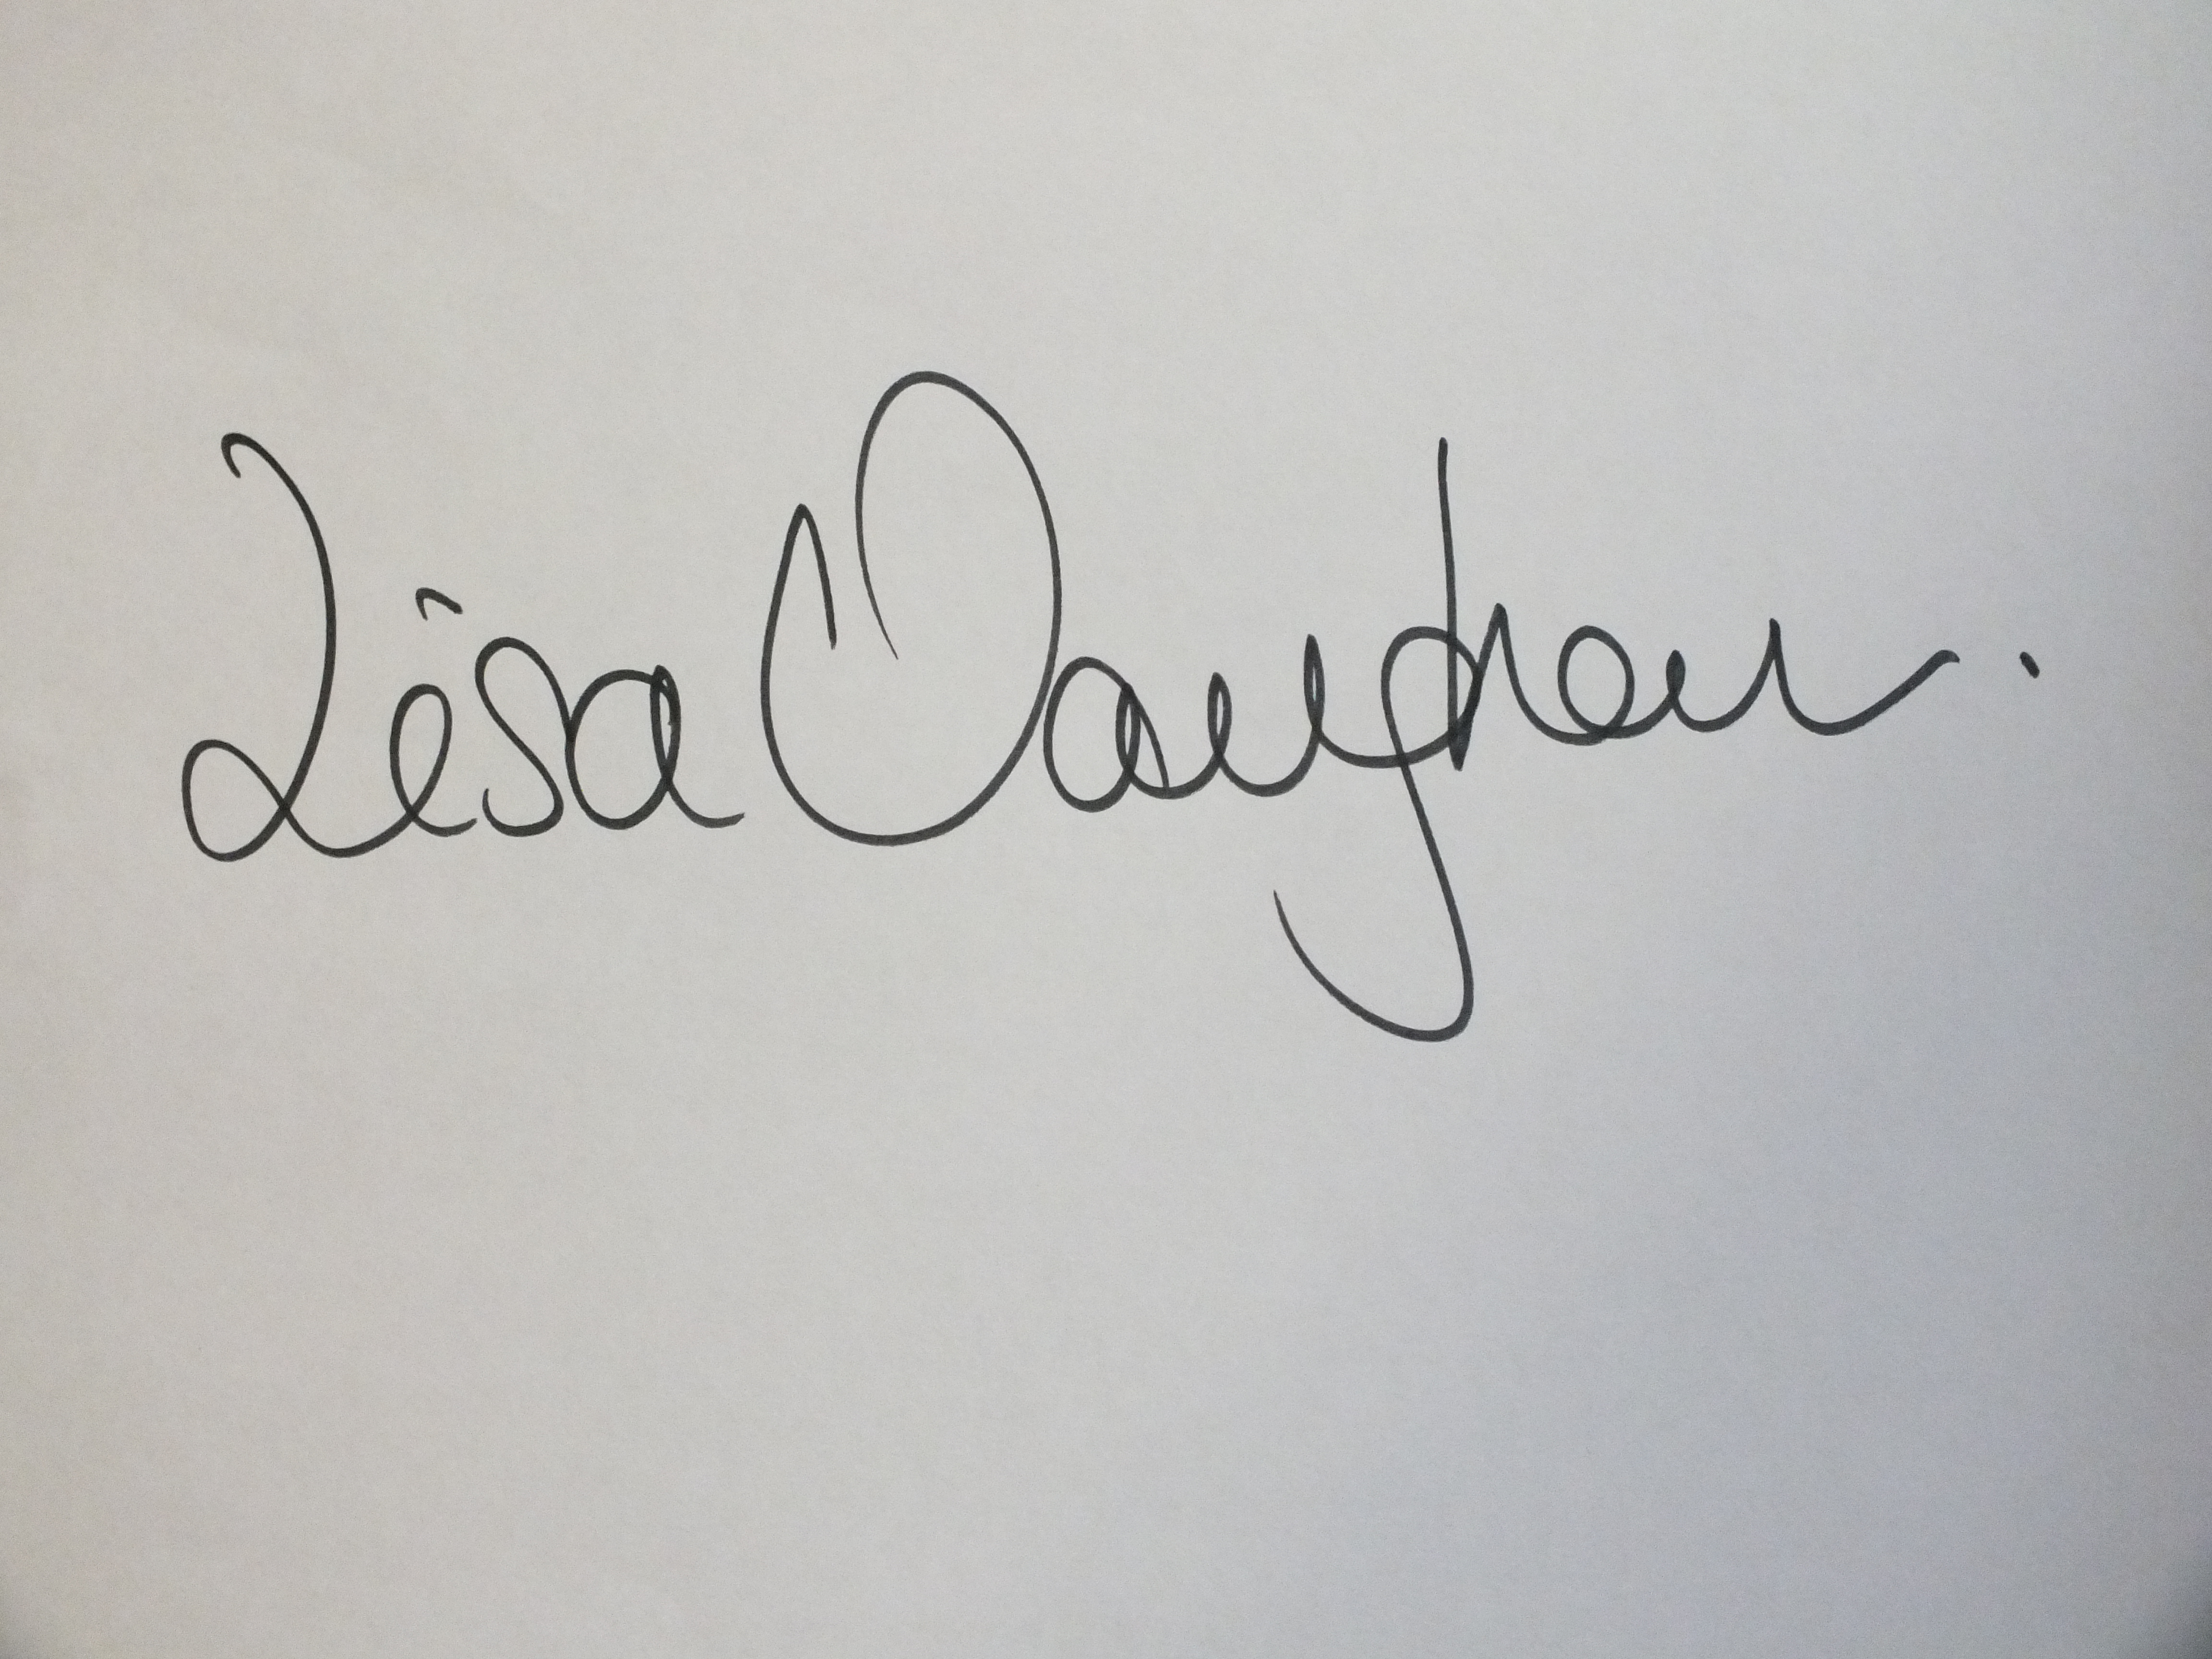 Lisa vaughan's Signature